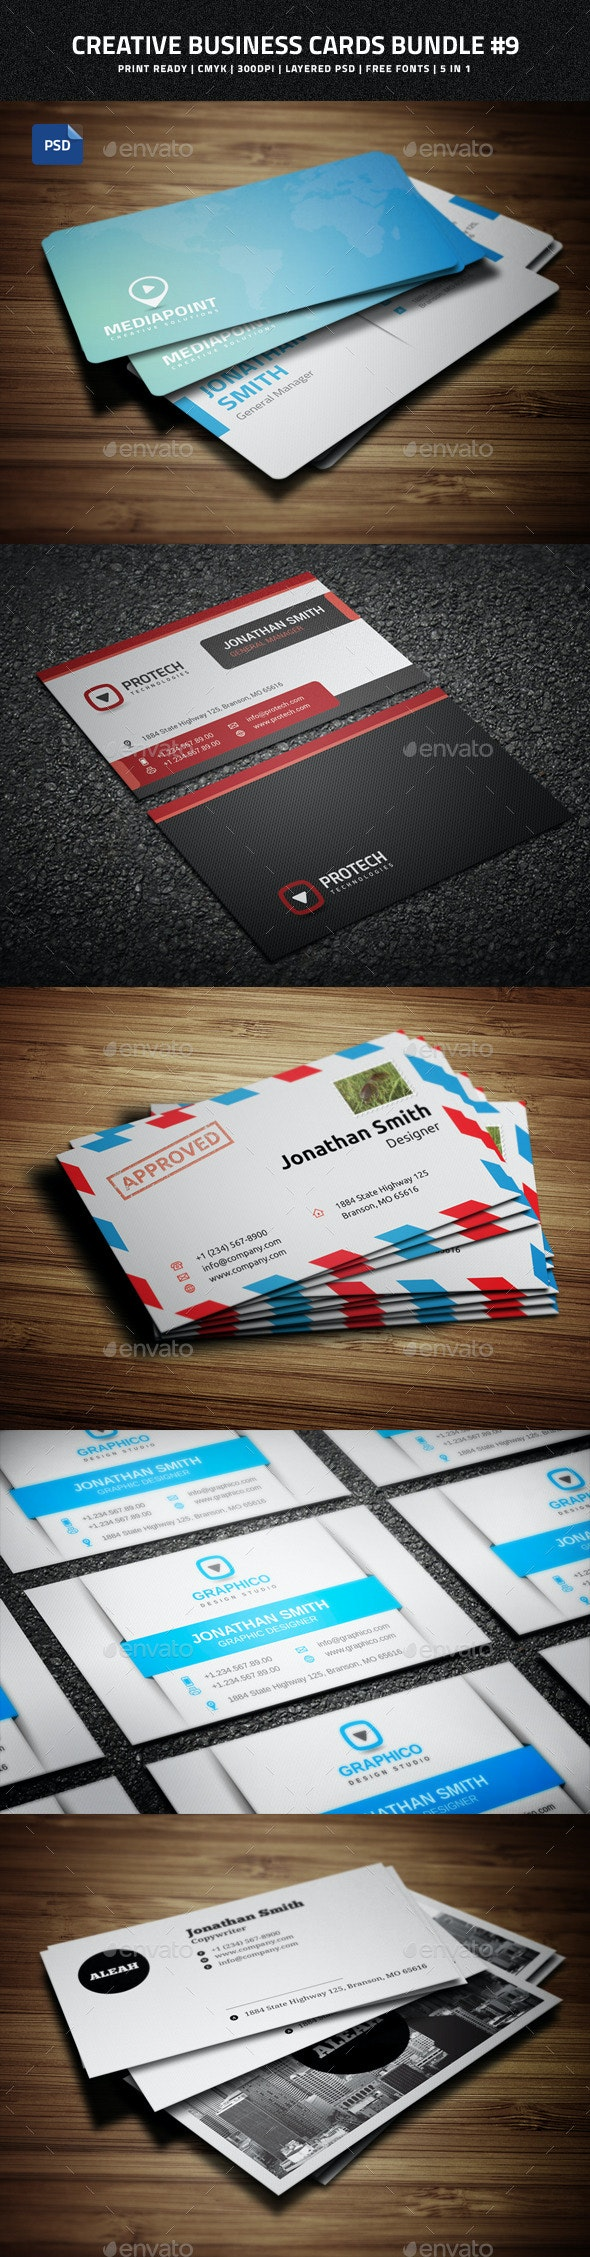 Creative Business Cards Bundle #9 - Creative Business Cards